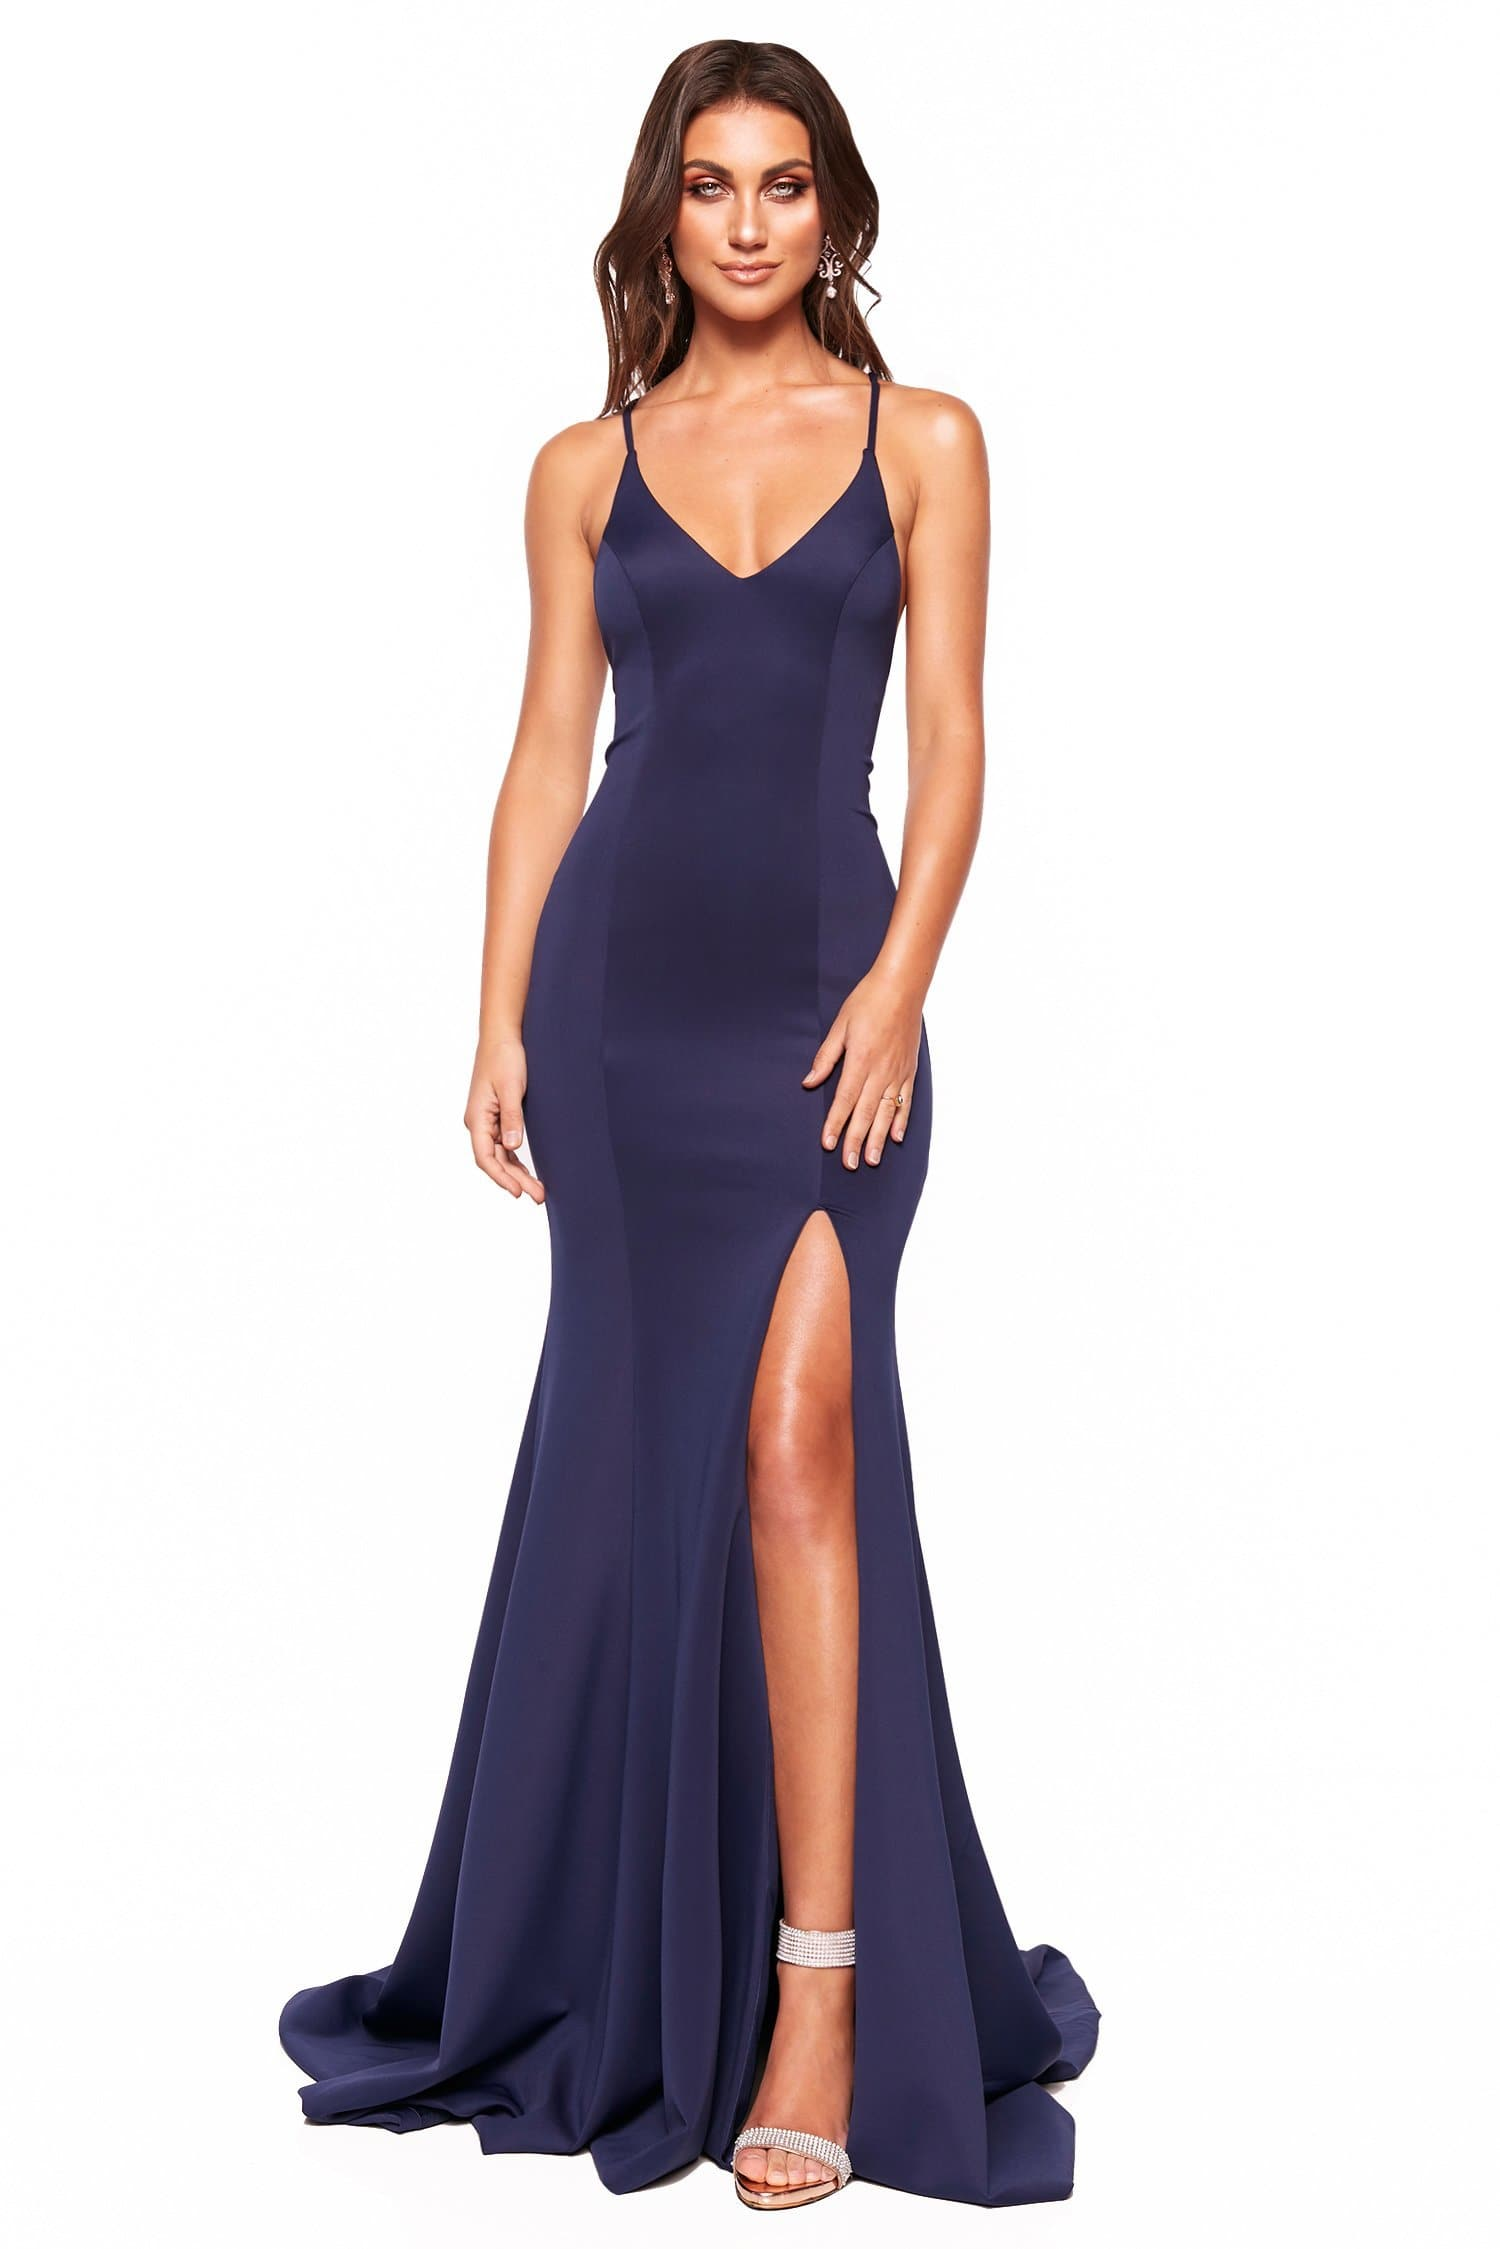 A&N Luxe Emilie - Navy Gown with V-Neck, Lace-Up Back & Side slit